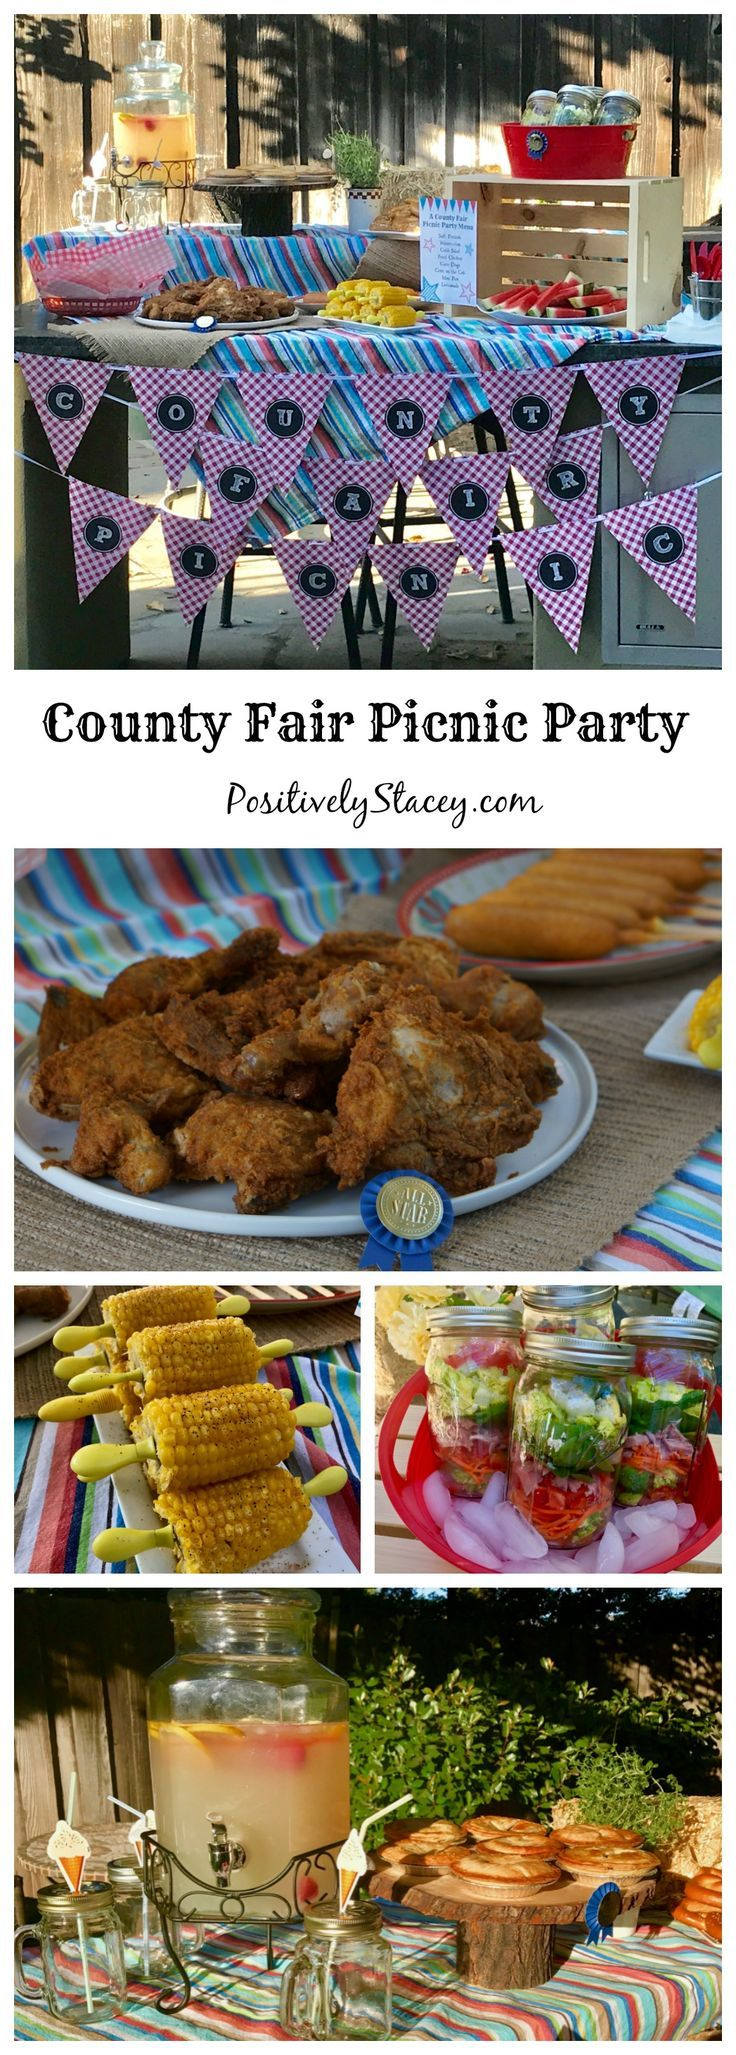 A County Fair Picnic Party that includes a yummy make-ahead menu of favorite fair foods and carnival games for everyone to play. #ad @Evite #Evite